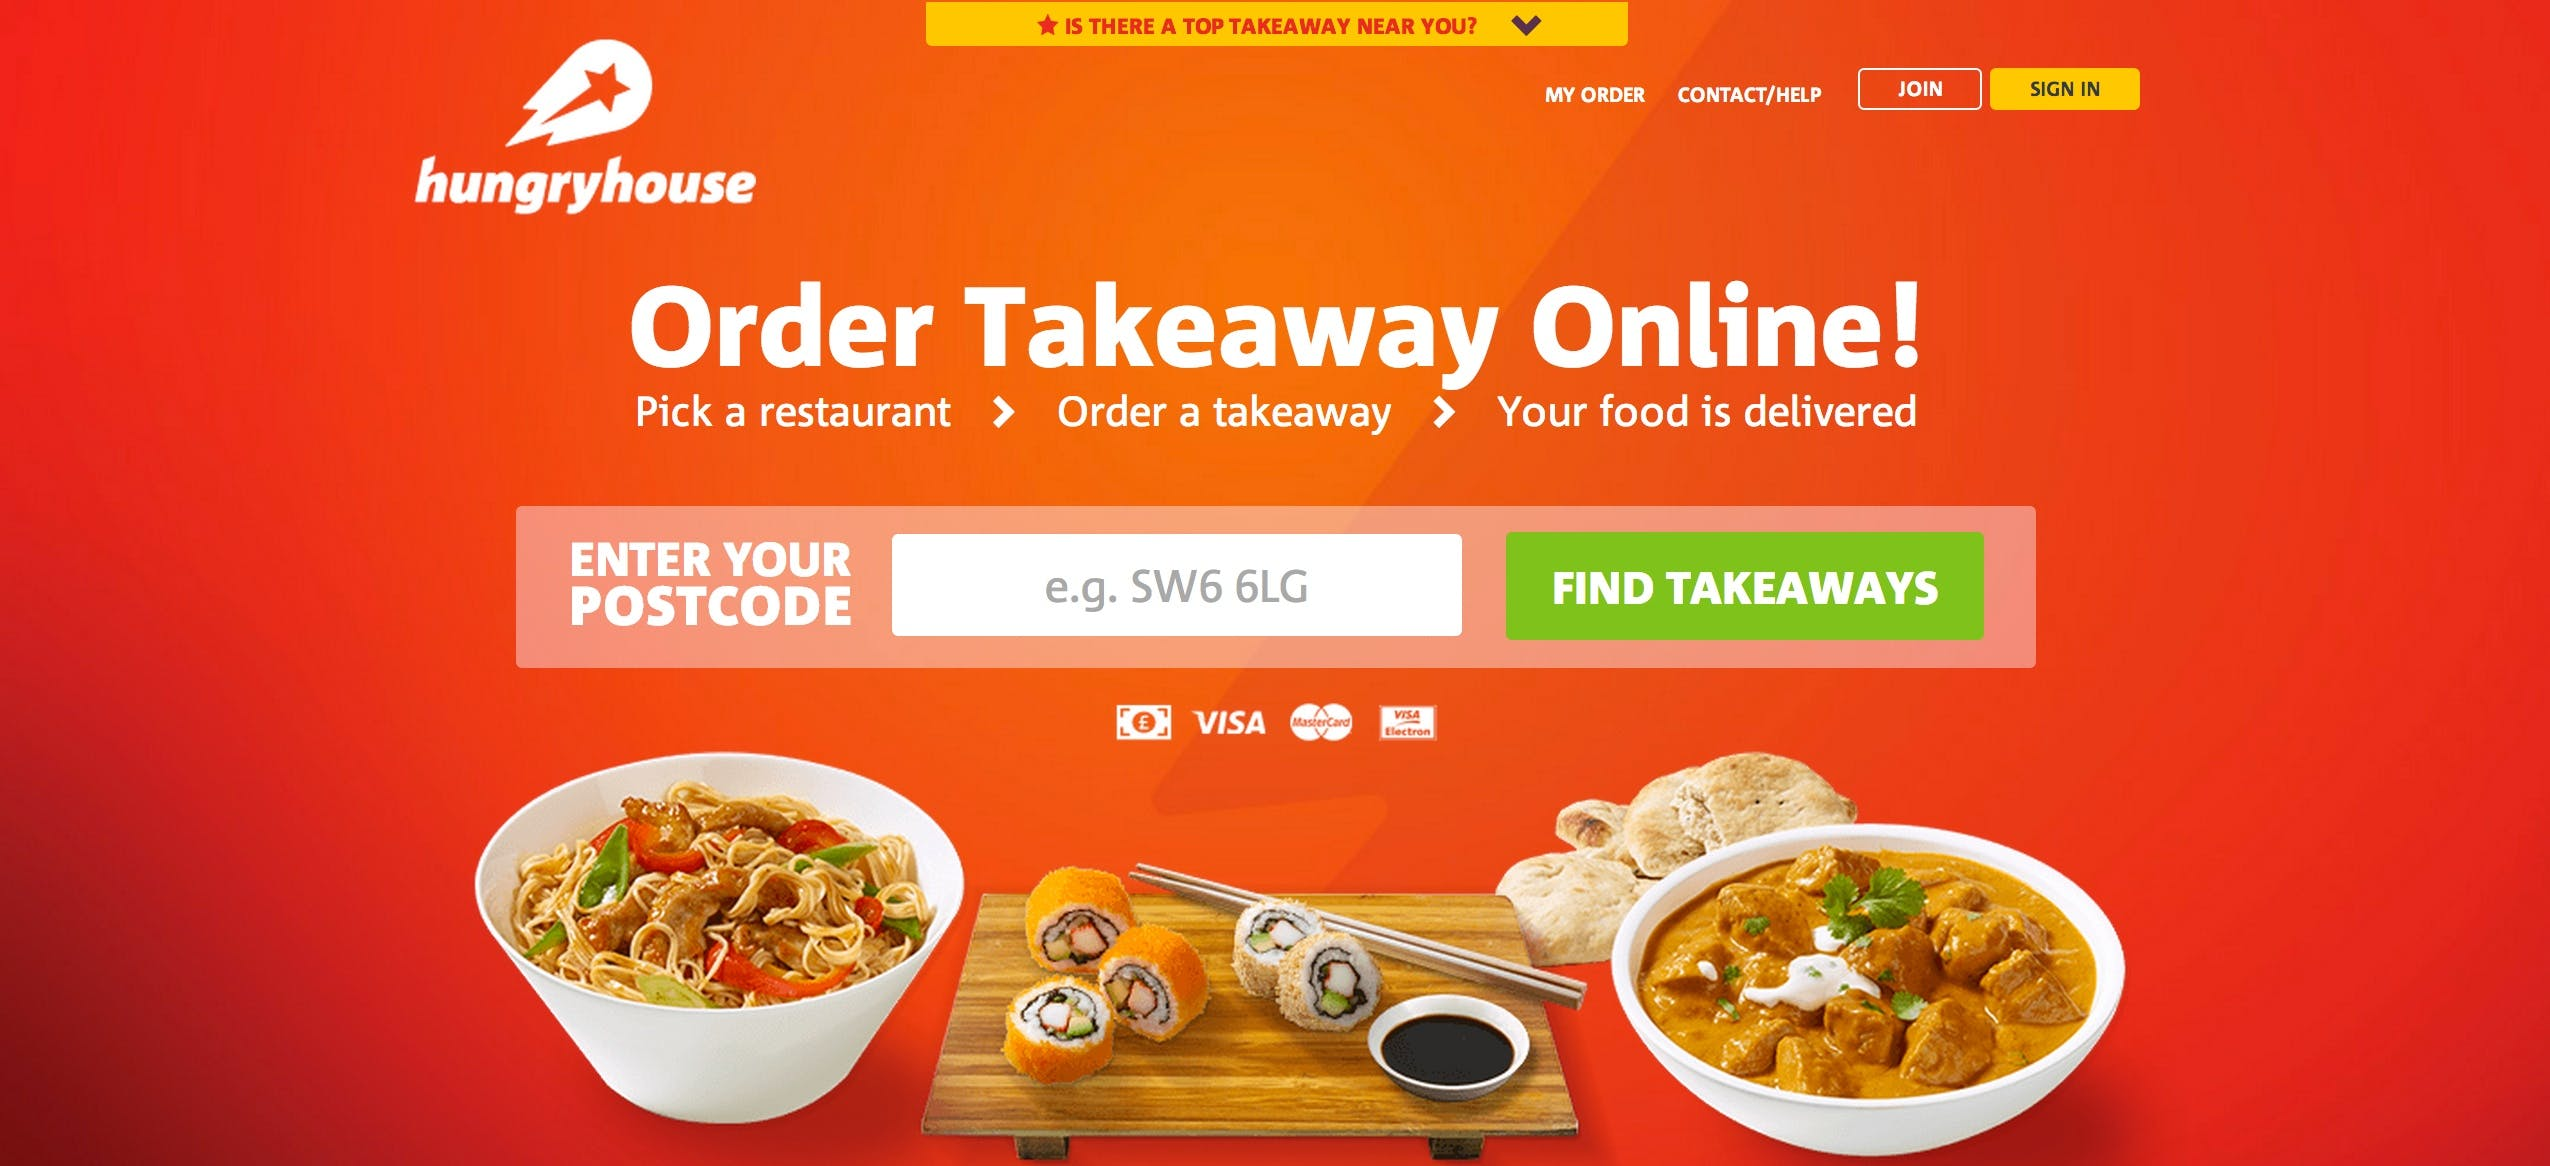 HungryHouse is turning to online merchandising to drive sales conversions.